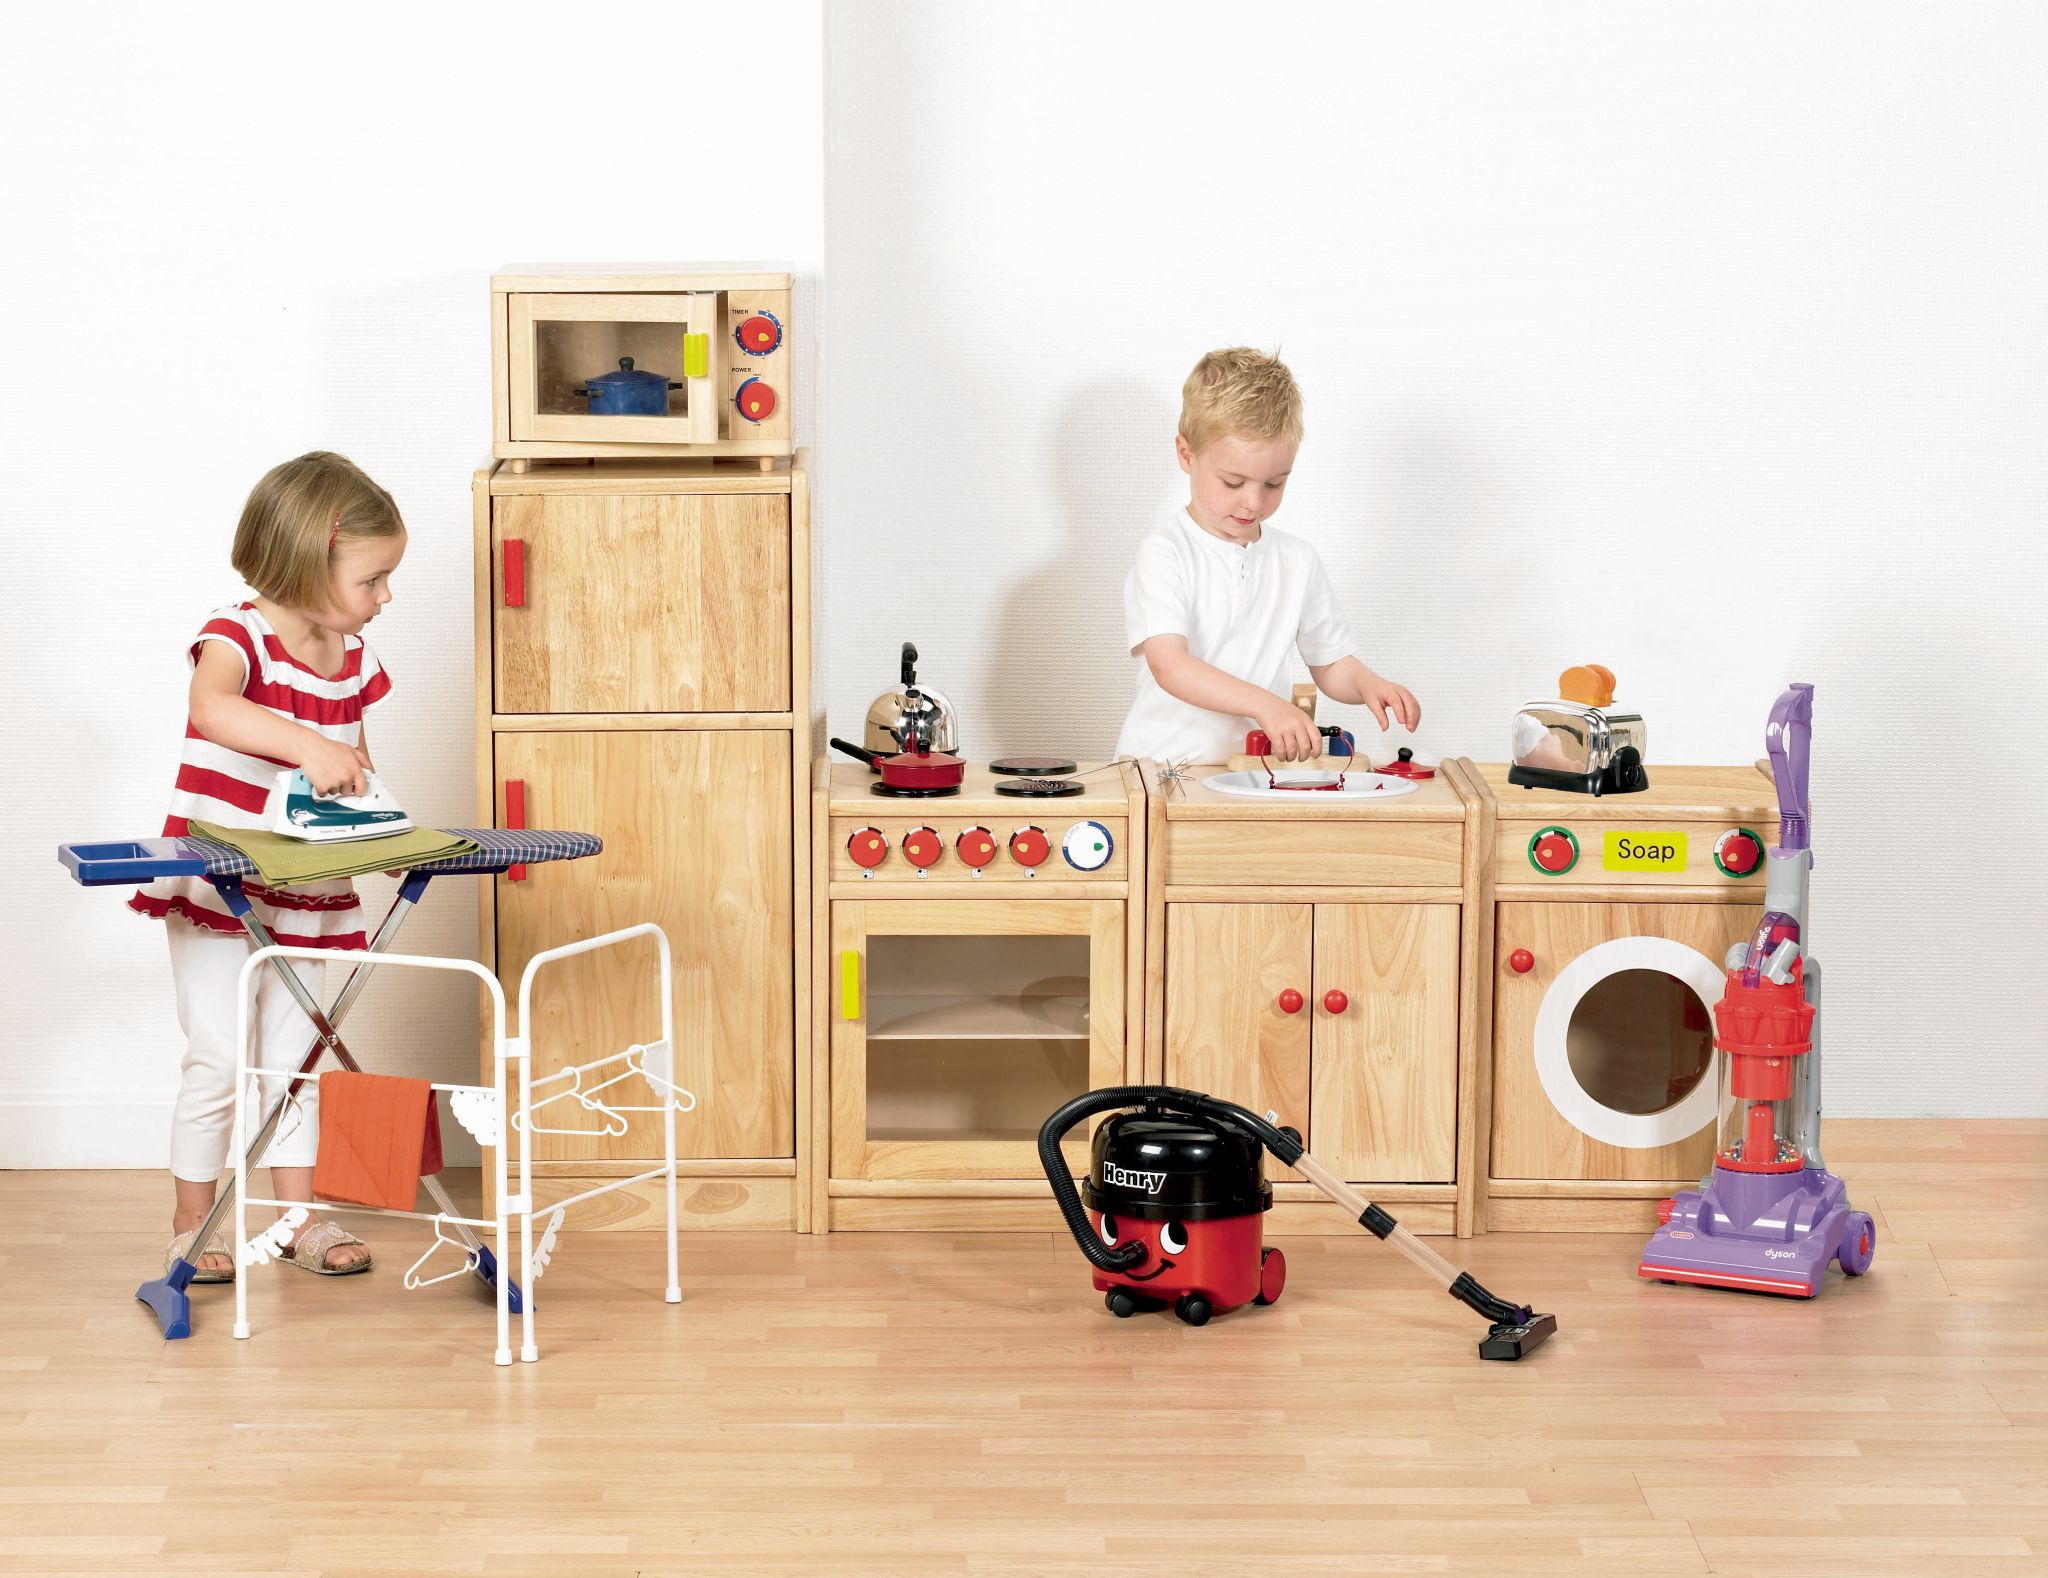 5 Piece Solid Hardwood Kitchen Pretend Play Kitchen Imagintive Play